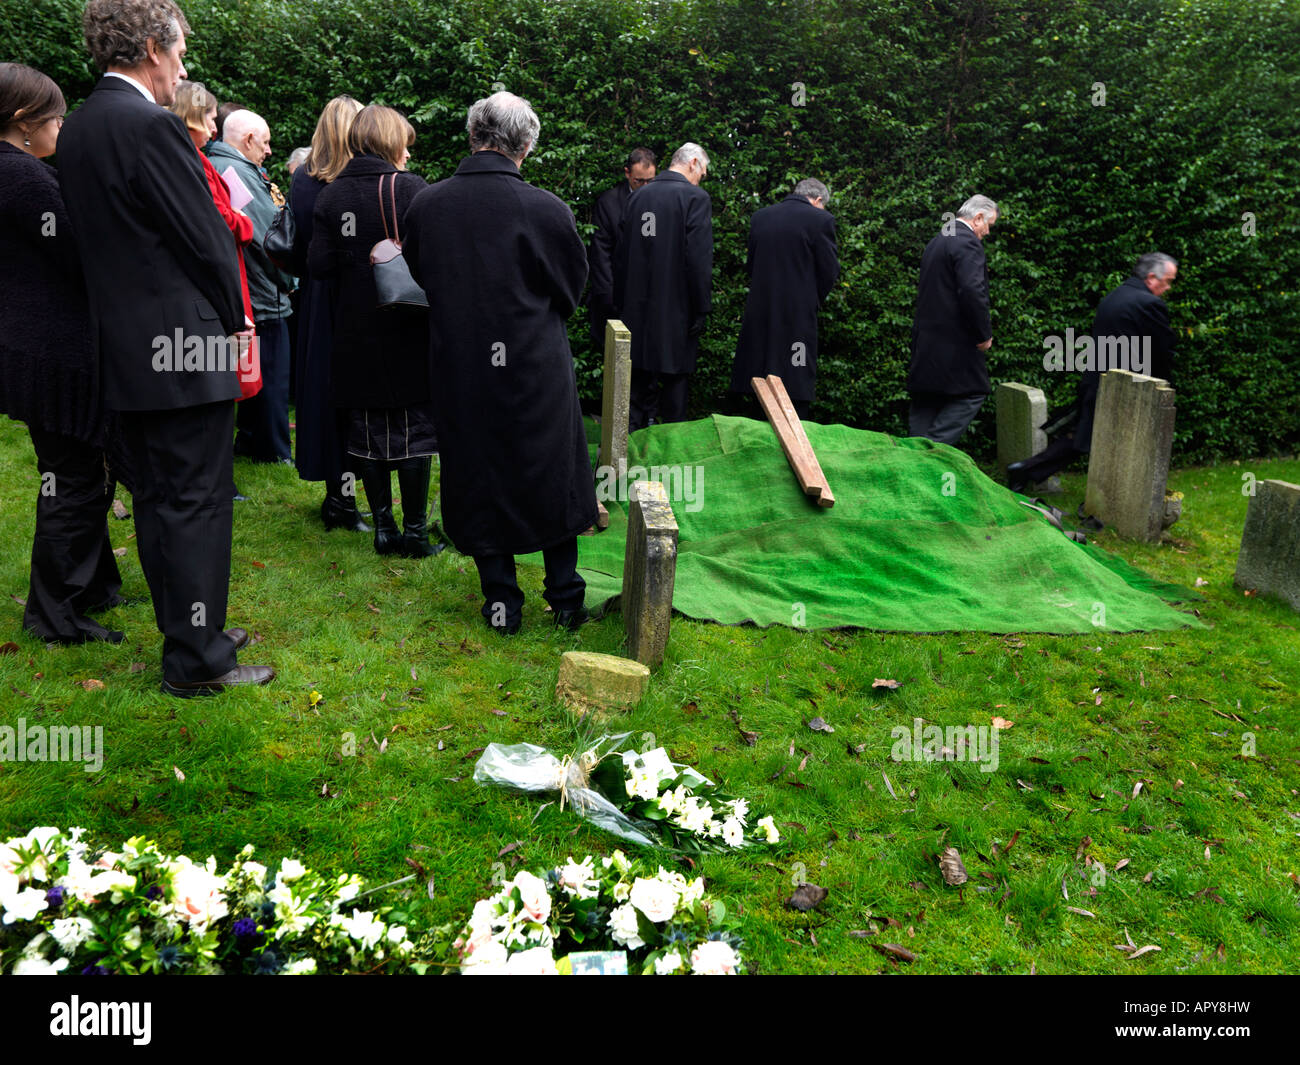 Funeral Saint Martins Church East Horsley Surrey England Family at Burial - Stock Image